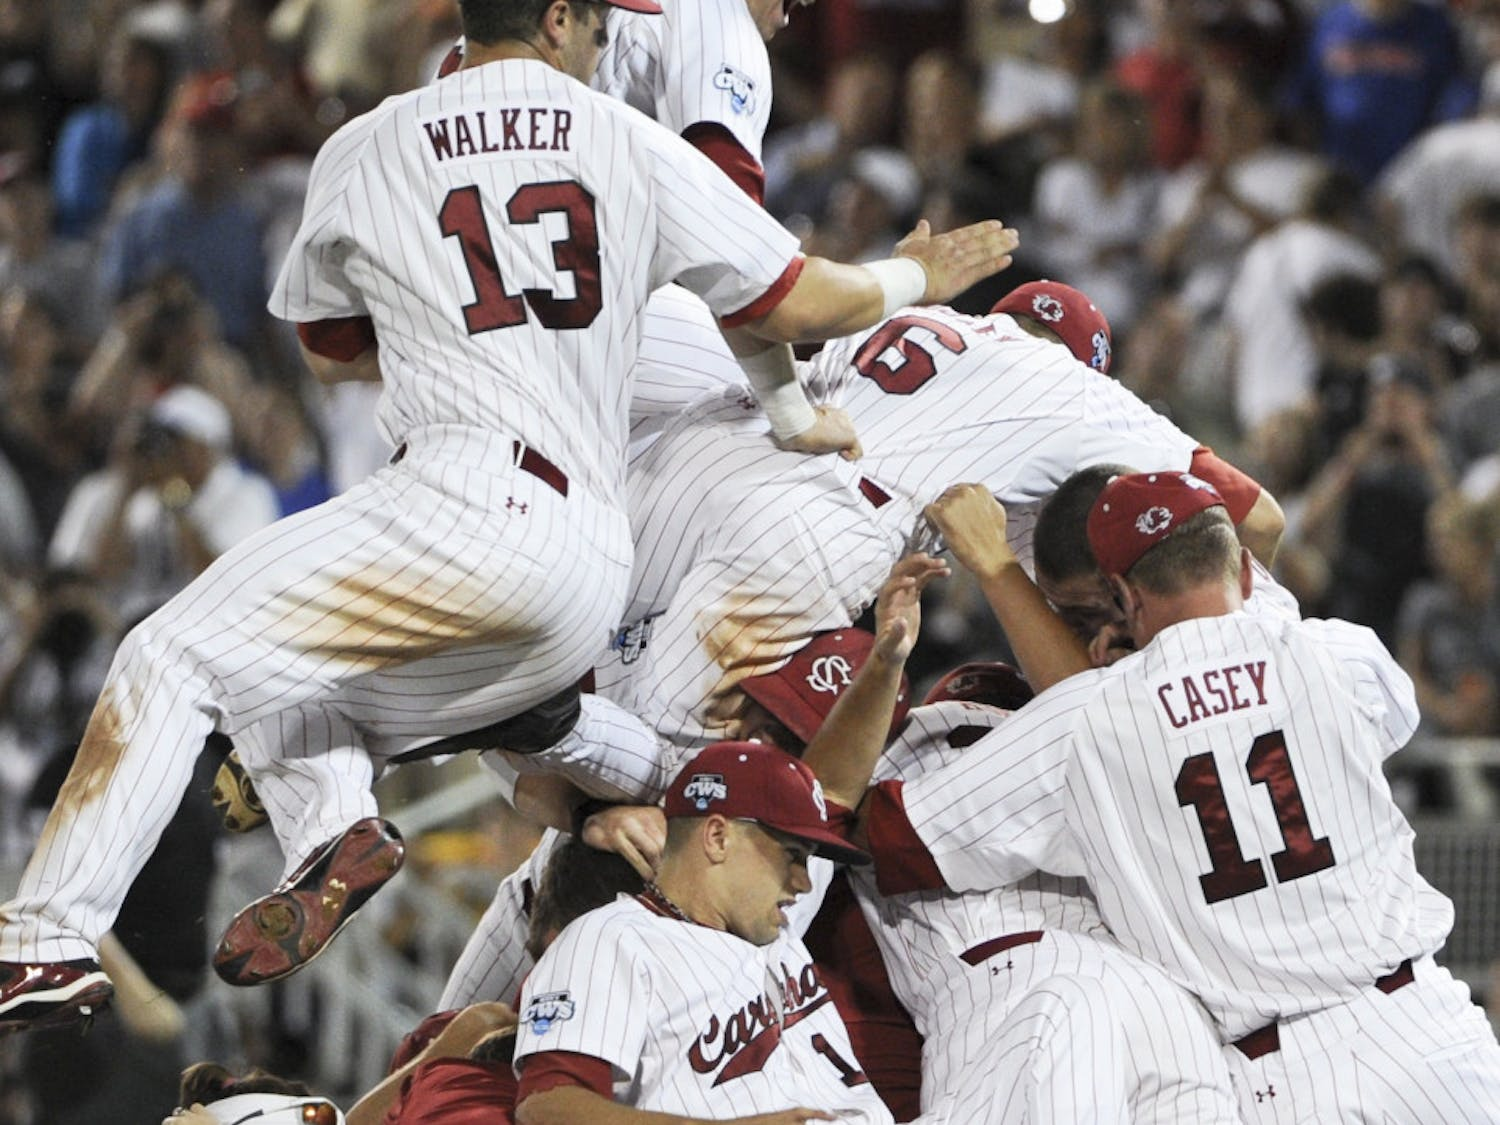 South Carolina players celebrate after beating Florida 5-2 in Game 2 of the NCAA baseball College World Series best-of-three finals.